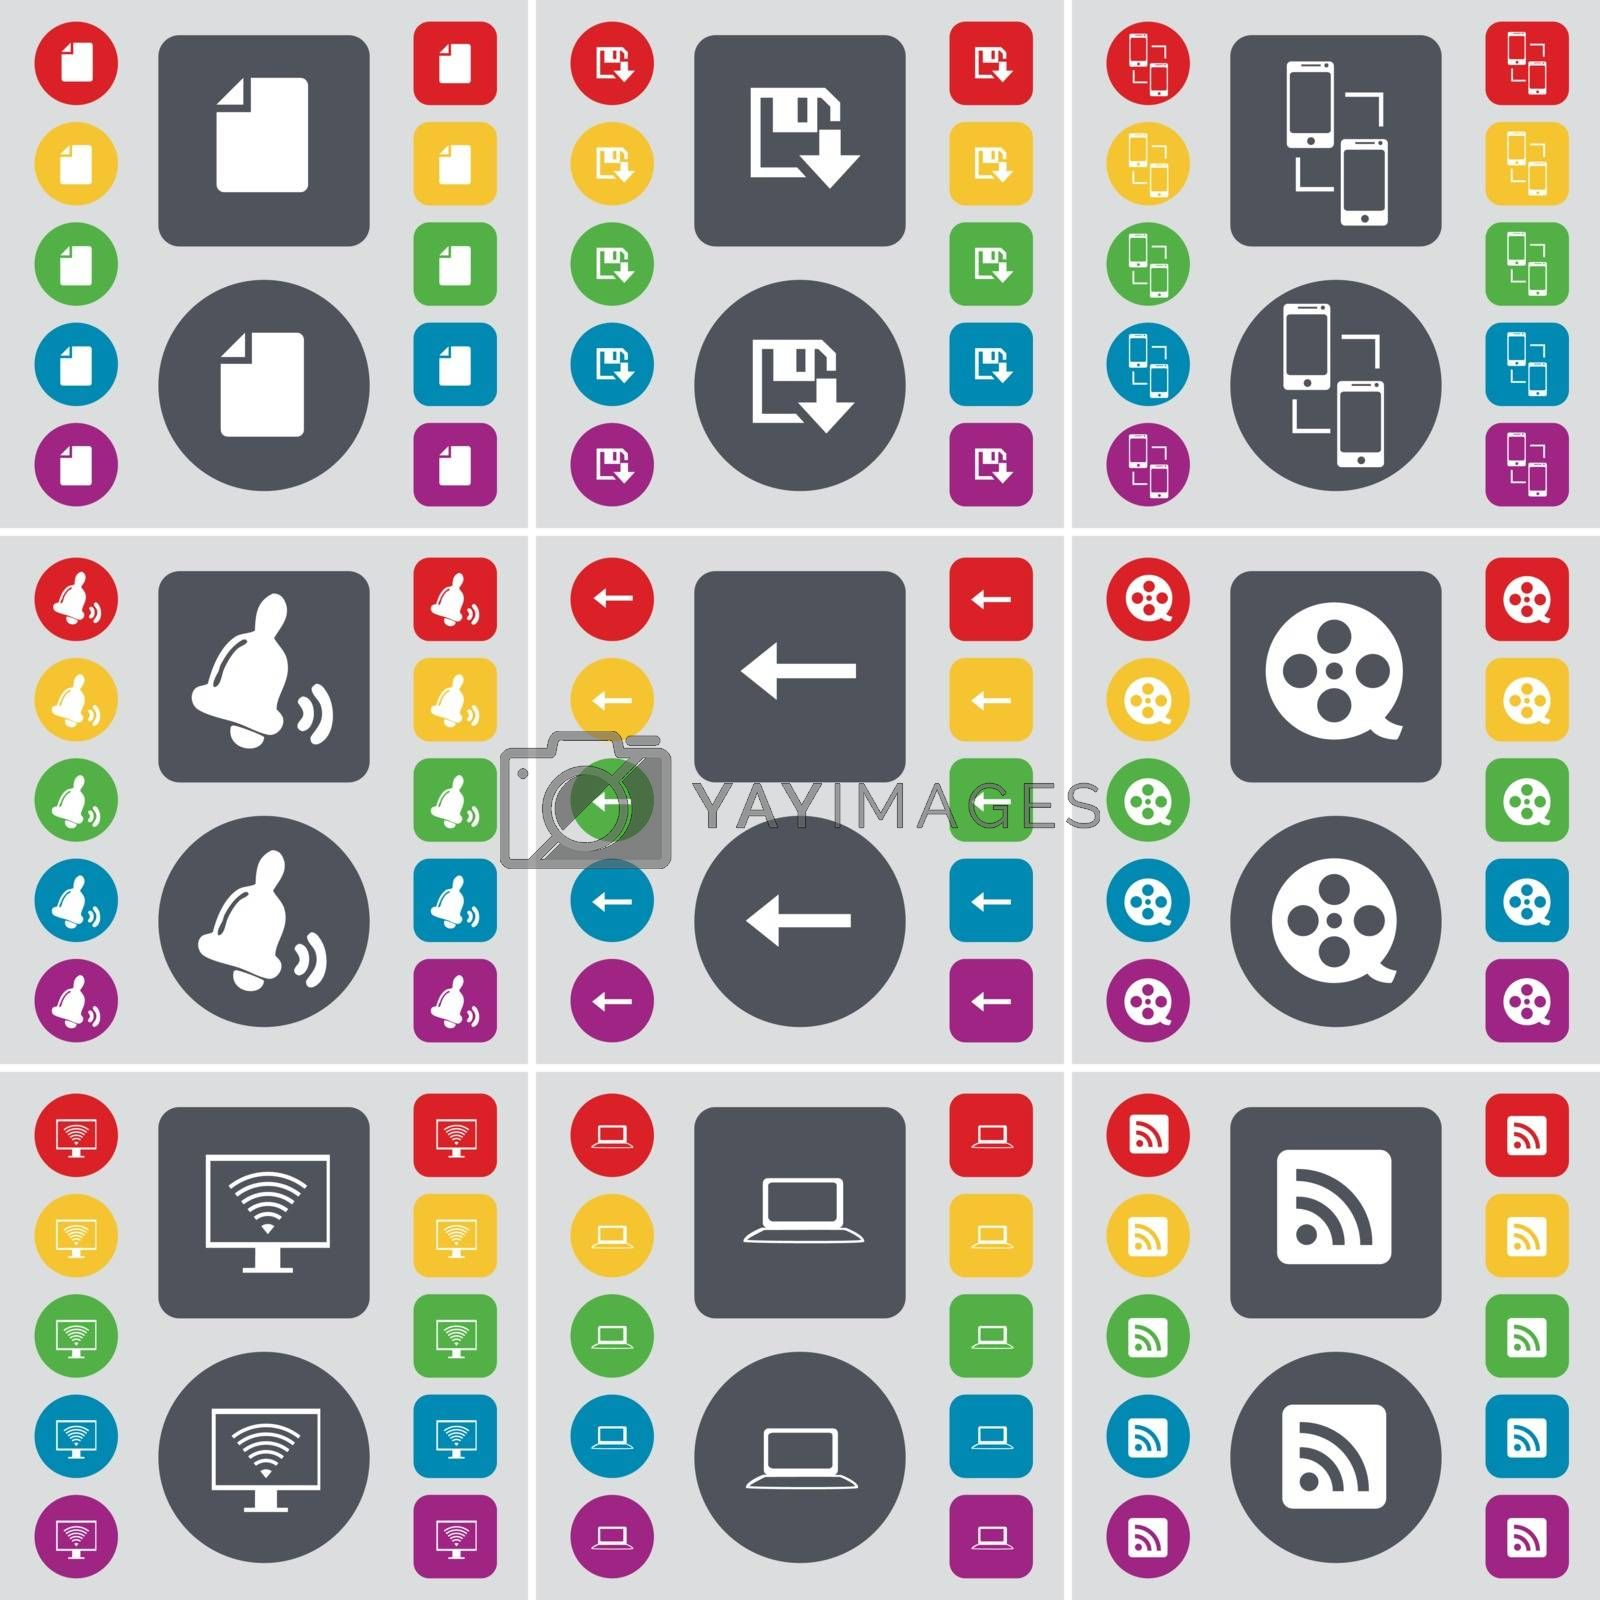 Royalty free image of File, Floppy, Connection, Bell, Arrow left, Videotape, Monitor, Laptop, RSS icon symbol. A large set of flat, colored buttons for your design. Vector by serhii_lohvyniuk